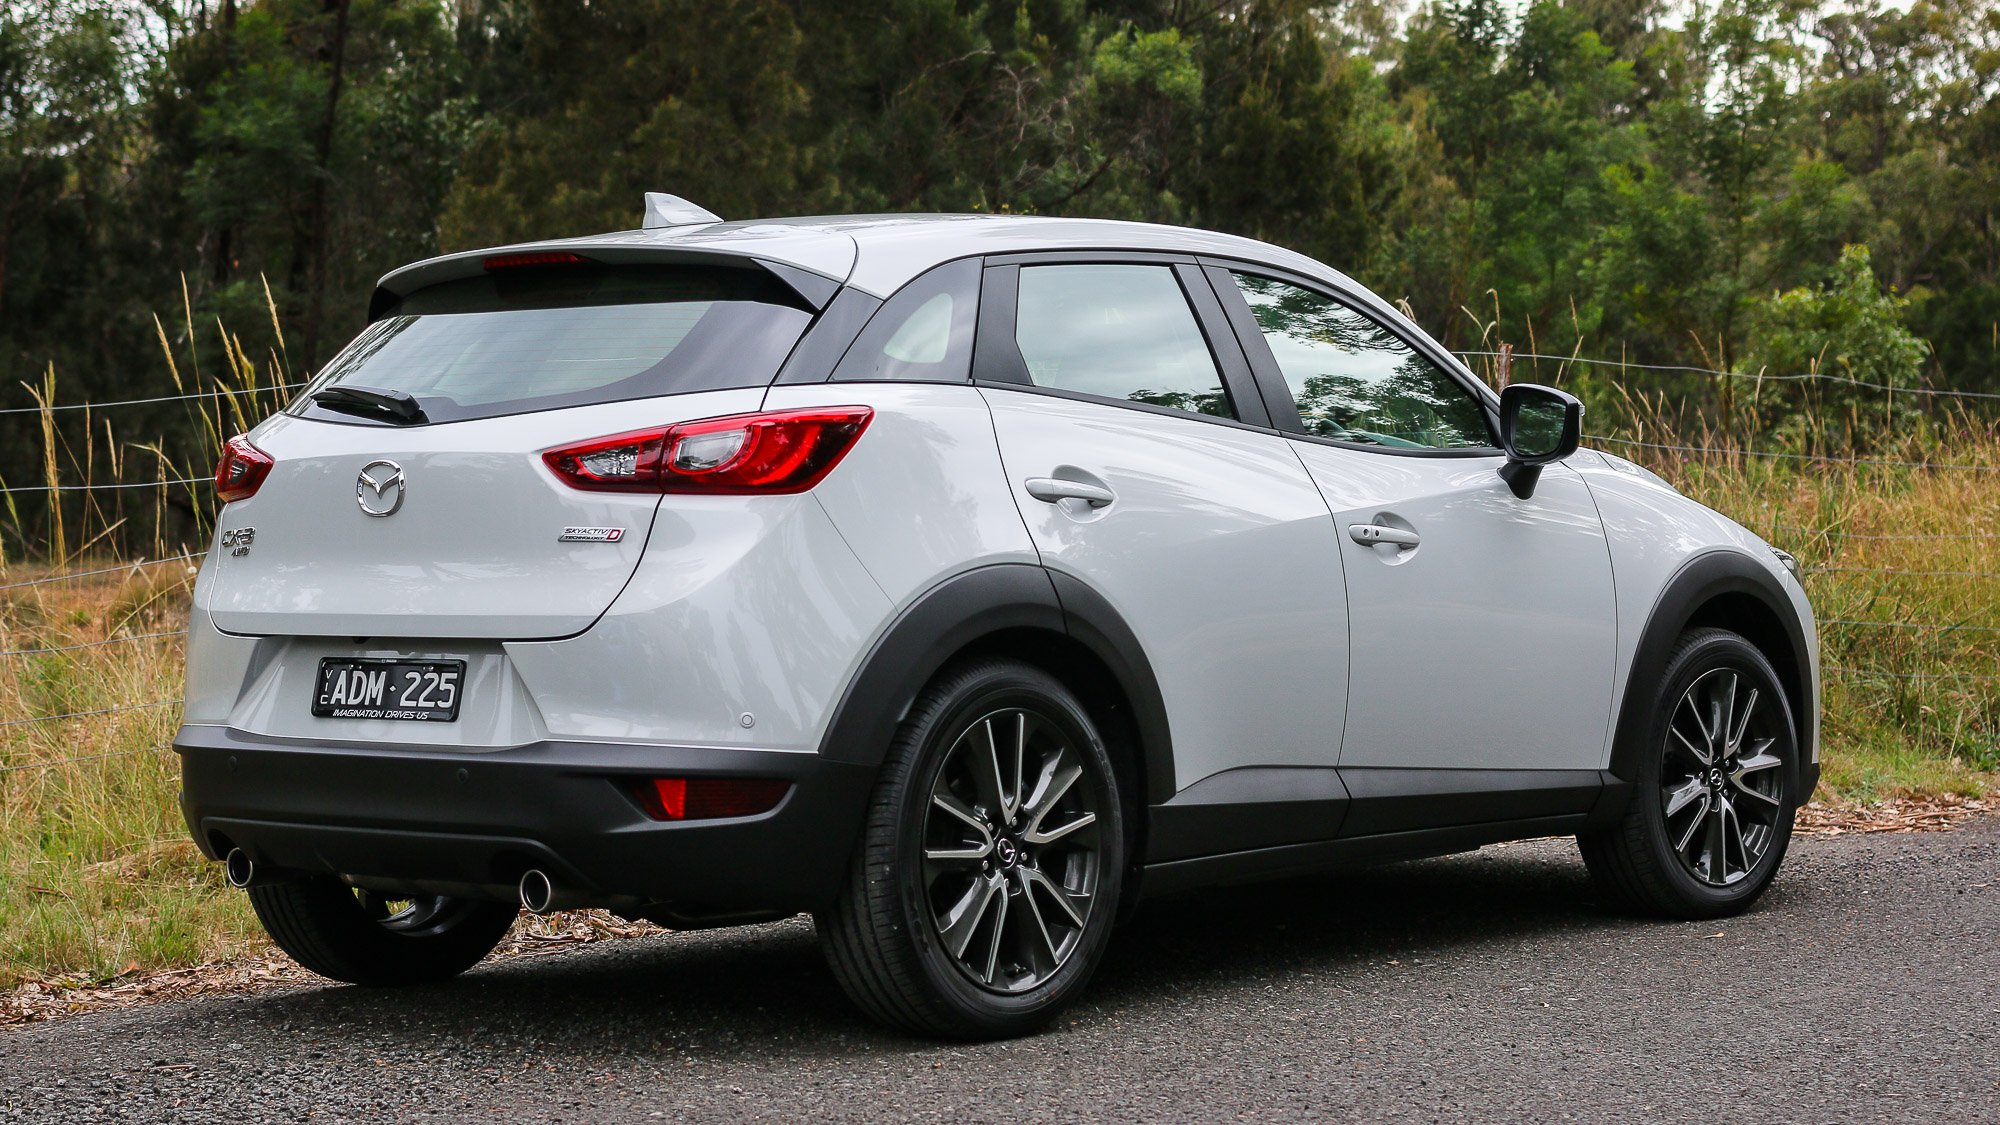 2015 mazda cx 3 pricing and specifications photos. Black Bedroom Furniture Sets. Home Design Ideas